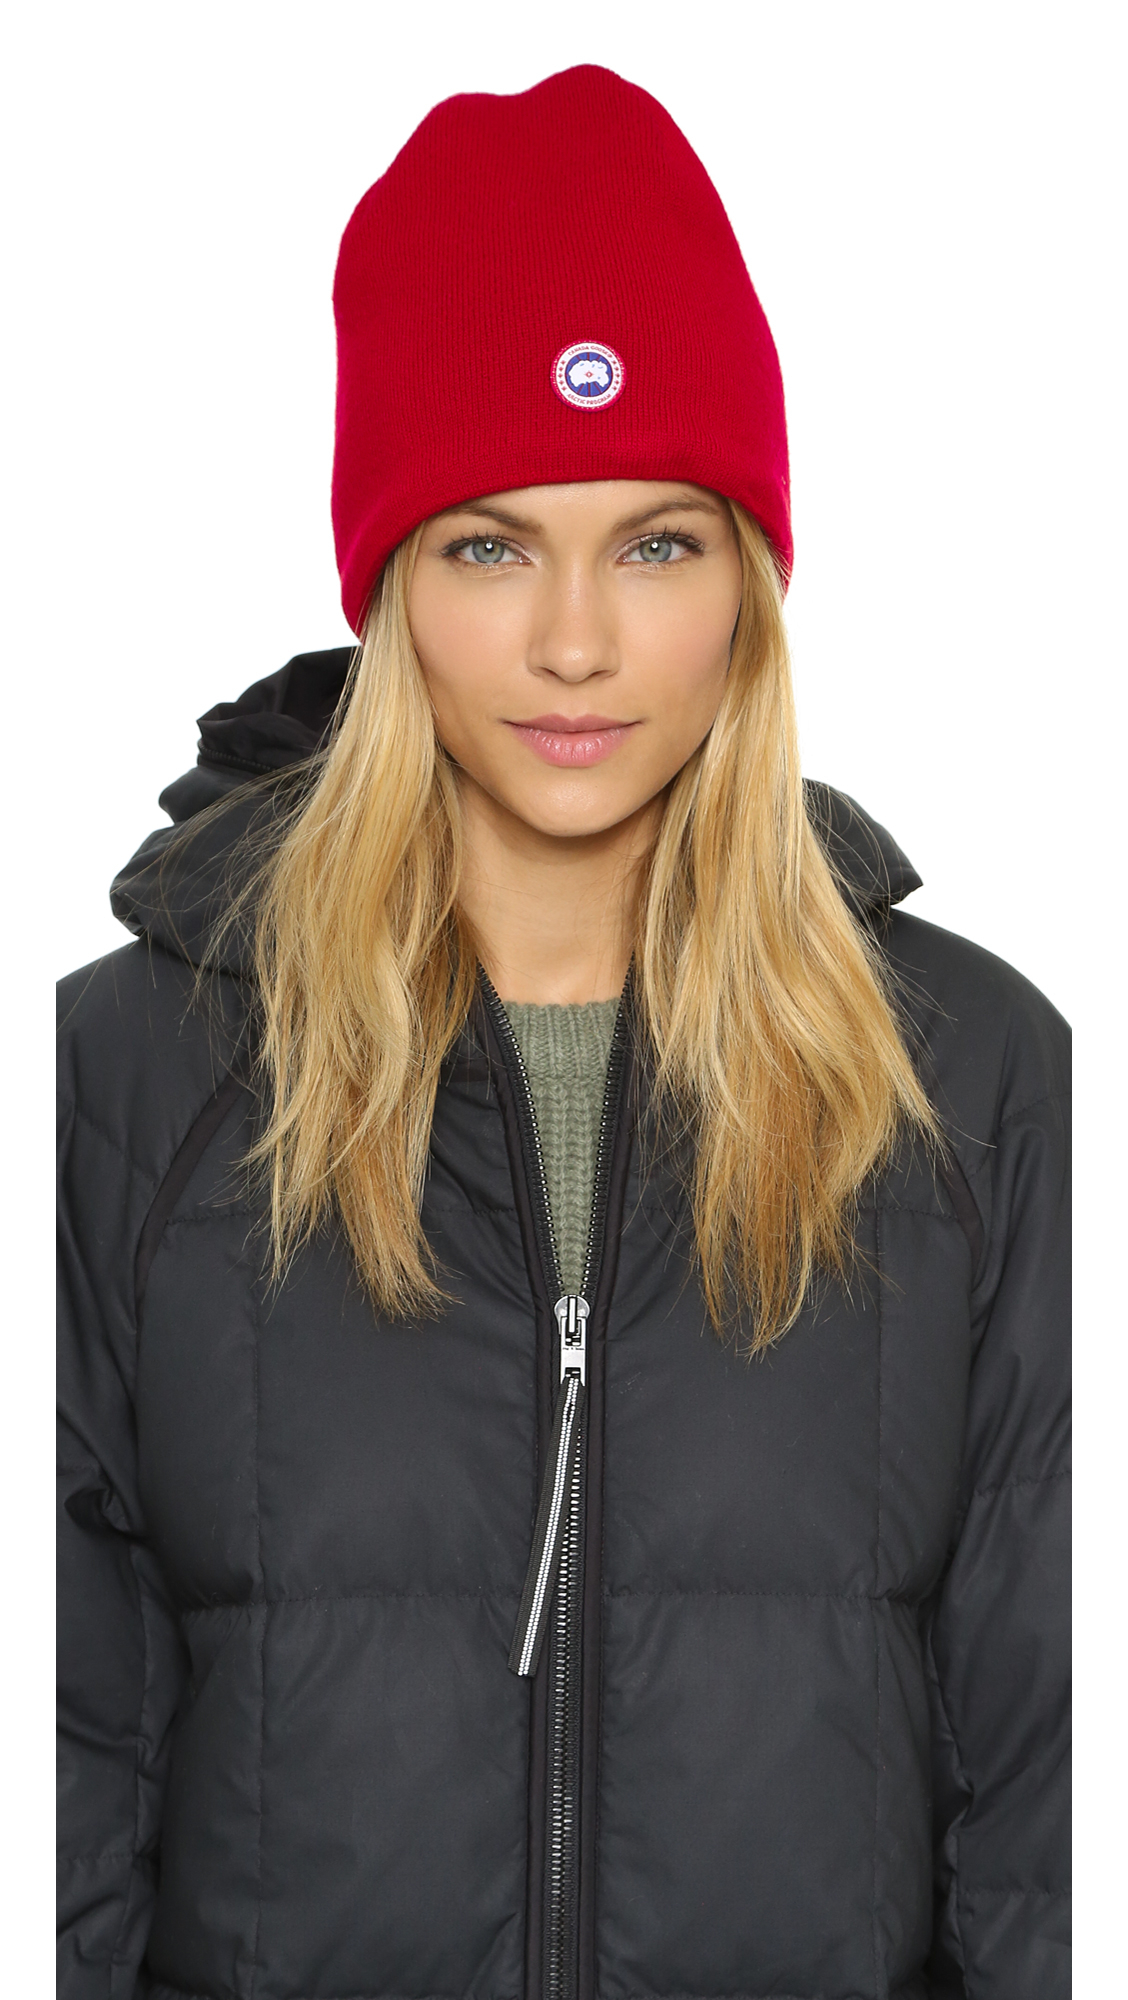 Lyst - Canada Goose Merino Wool Beanie - Black in Red 58b3e39224